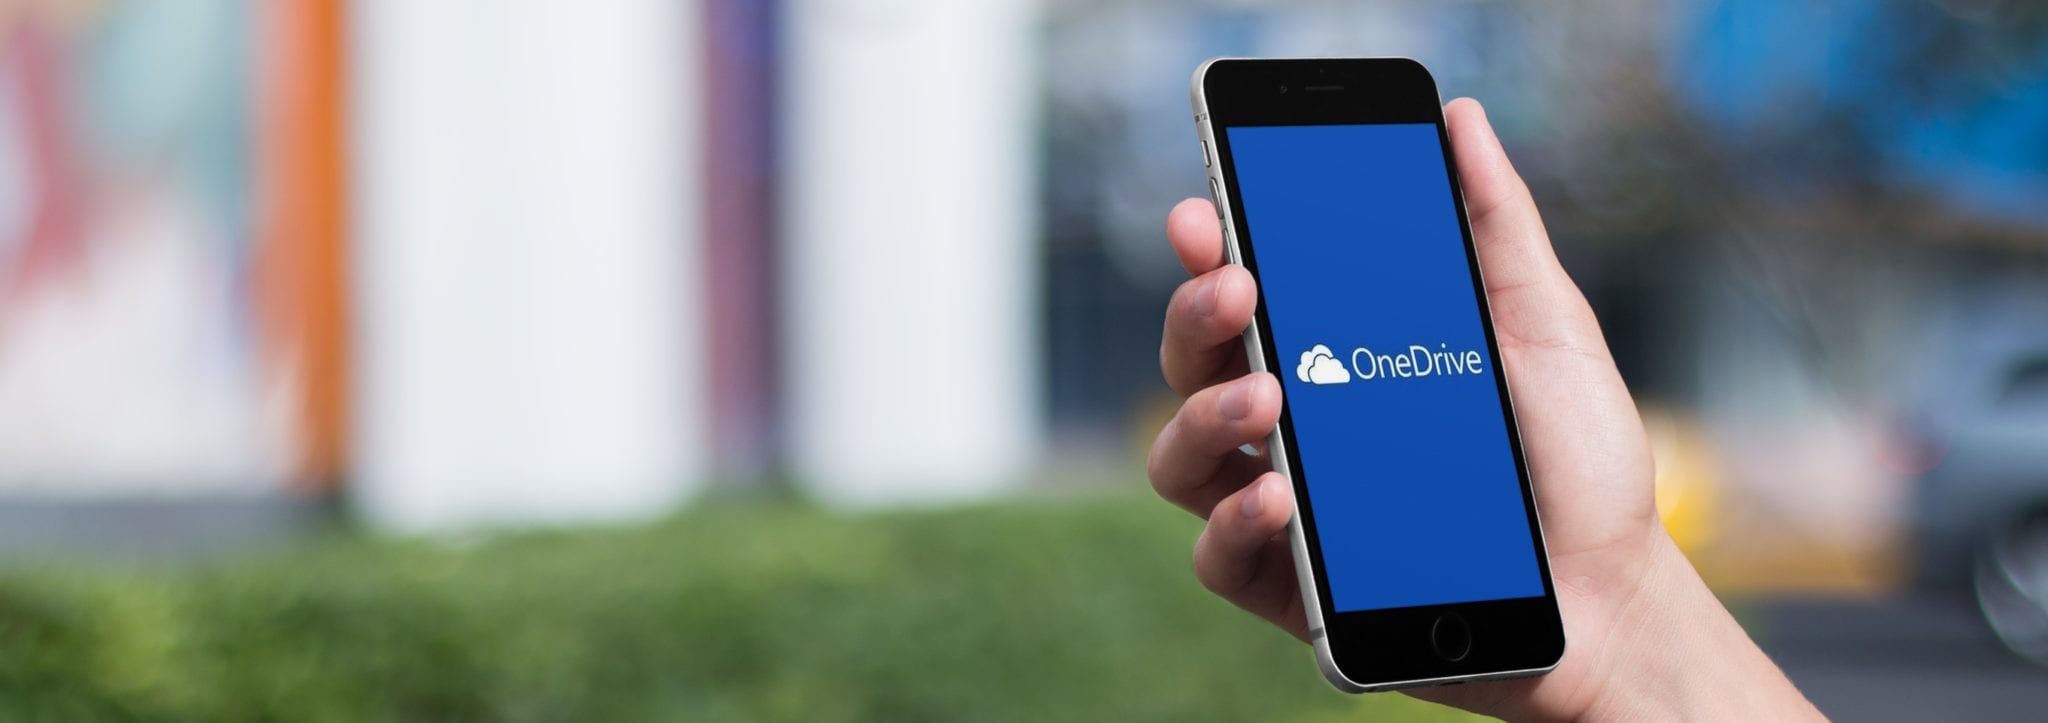 microsoft-rolling-out-mobile-push-notifications-for-onedrive-for-business-sharepoint.jpg